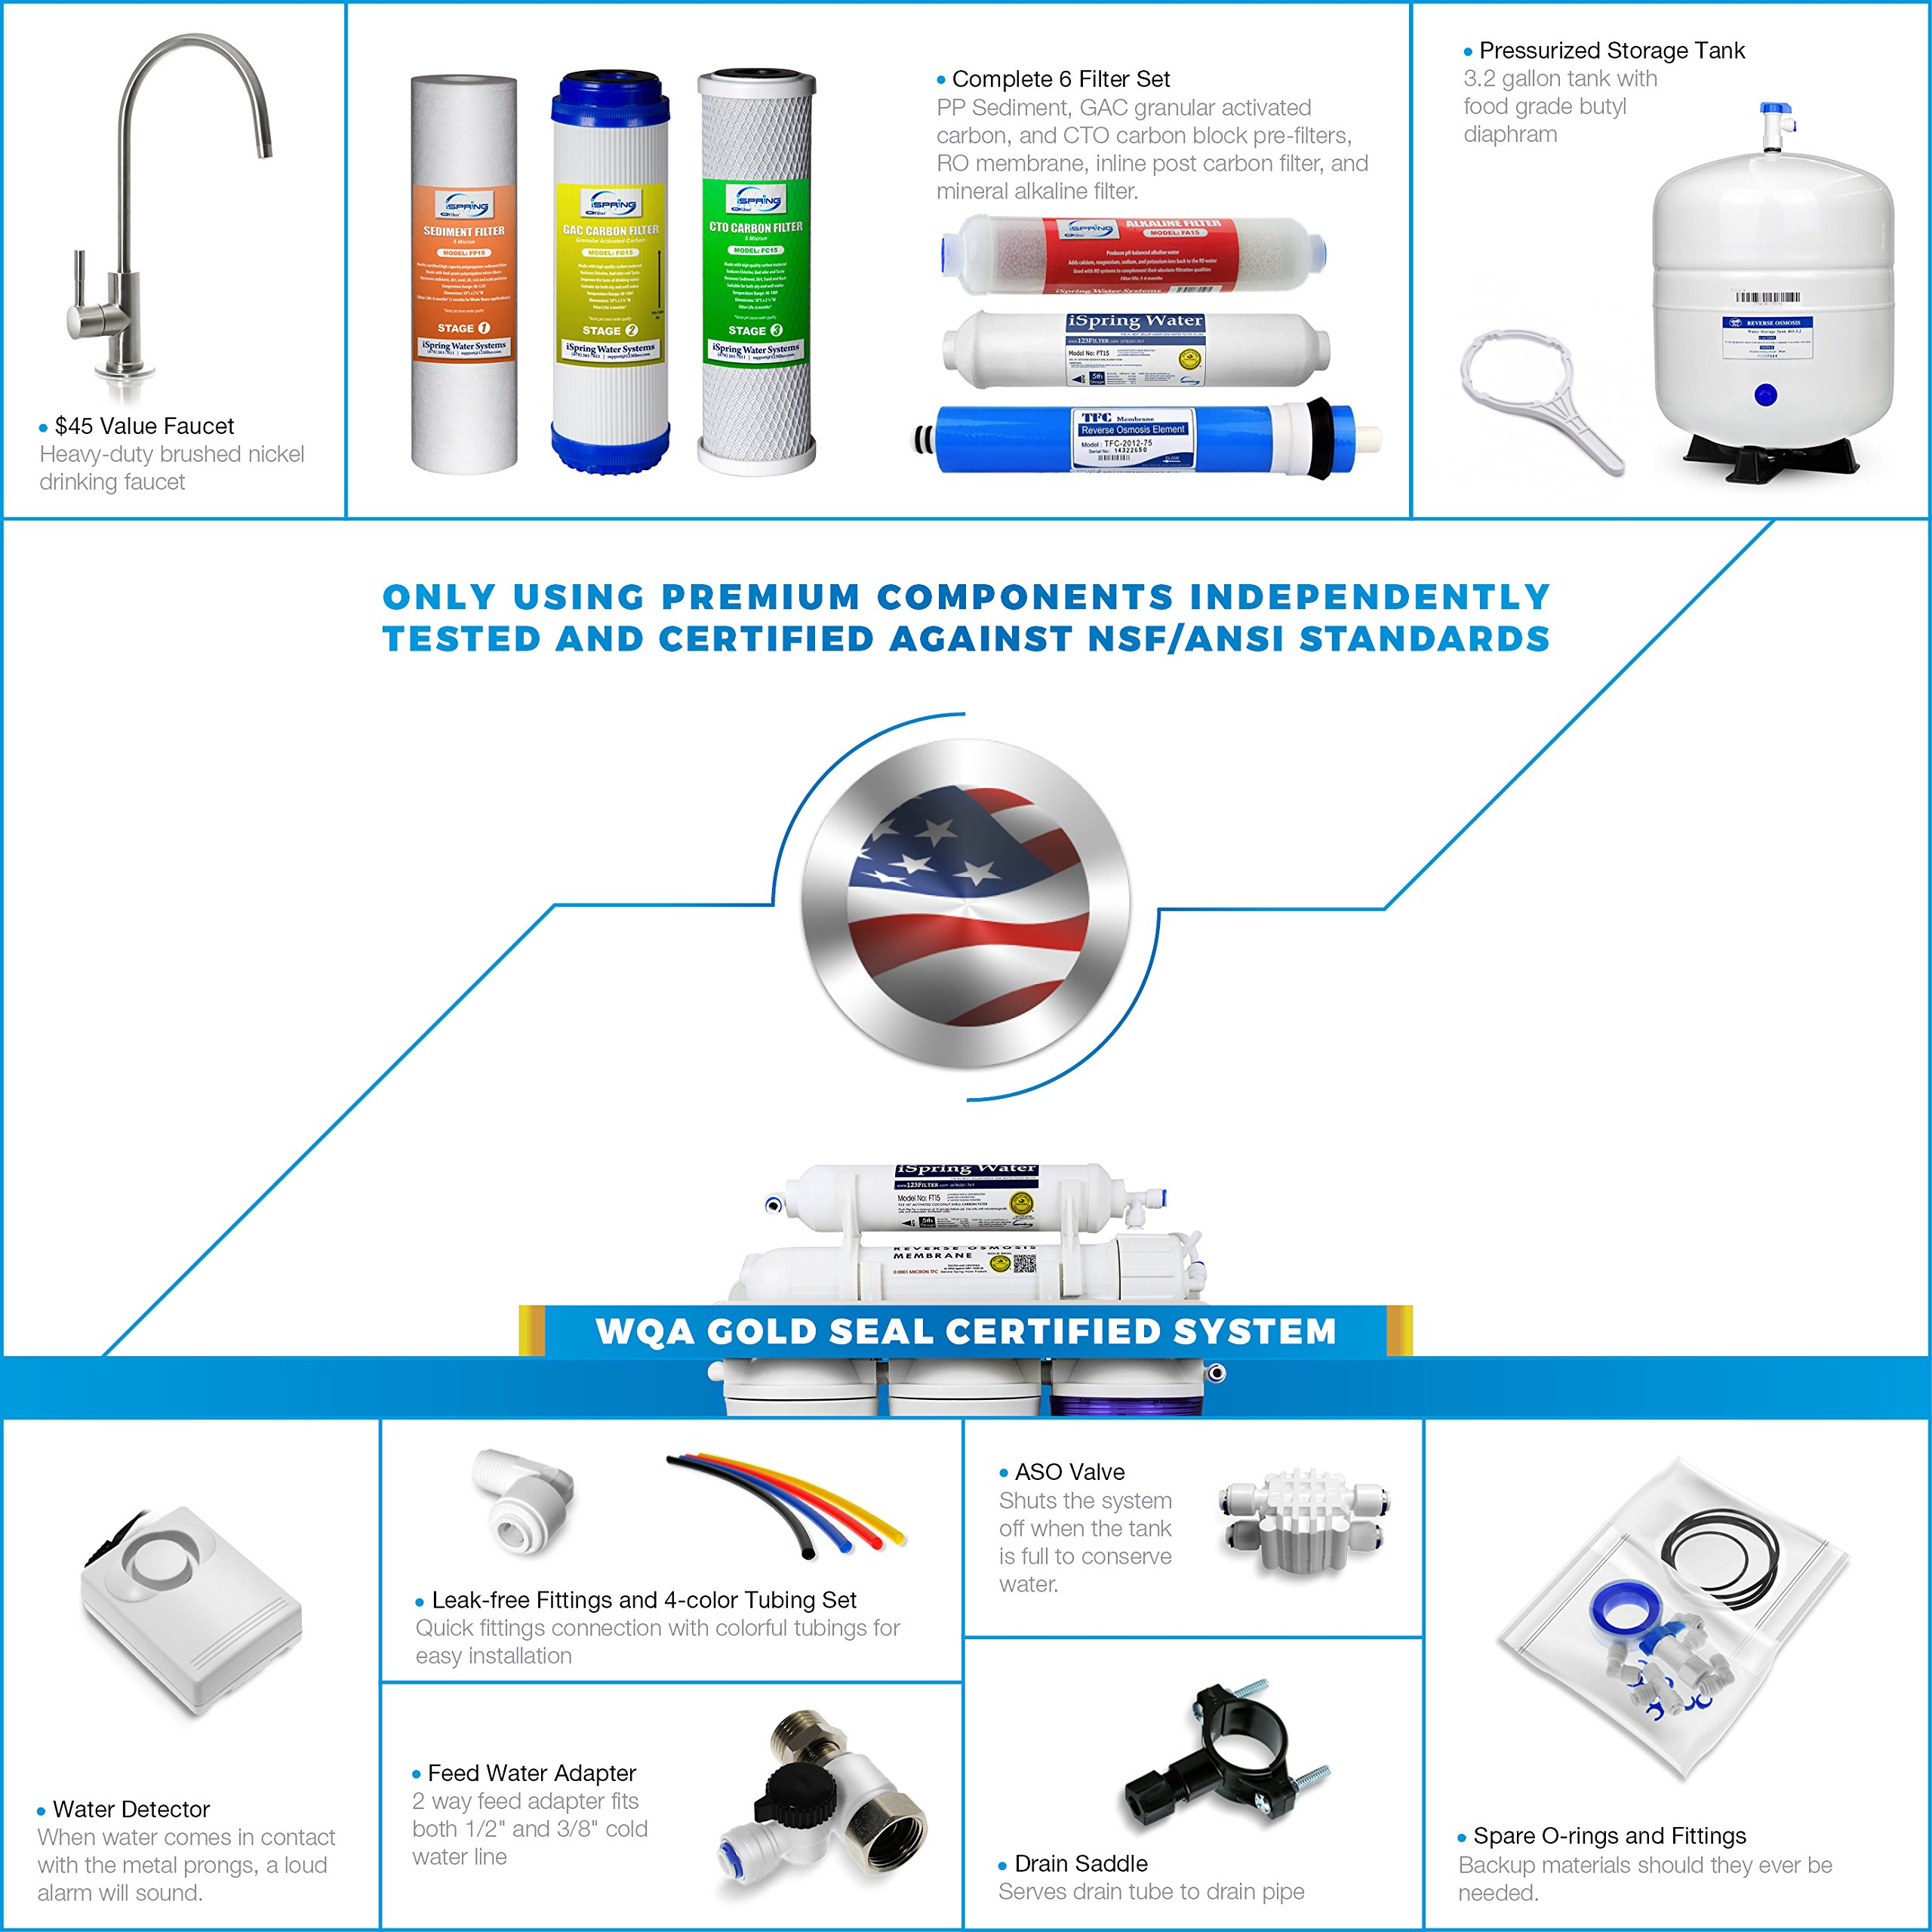 iSpring RCC7AK 6-Stage Under-Sink Reverse Osmosis Drinking Water Filtration System with Alkaline Remineralization Filter - 75 GPD by iSpring (Image #4)